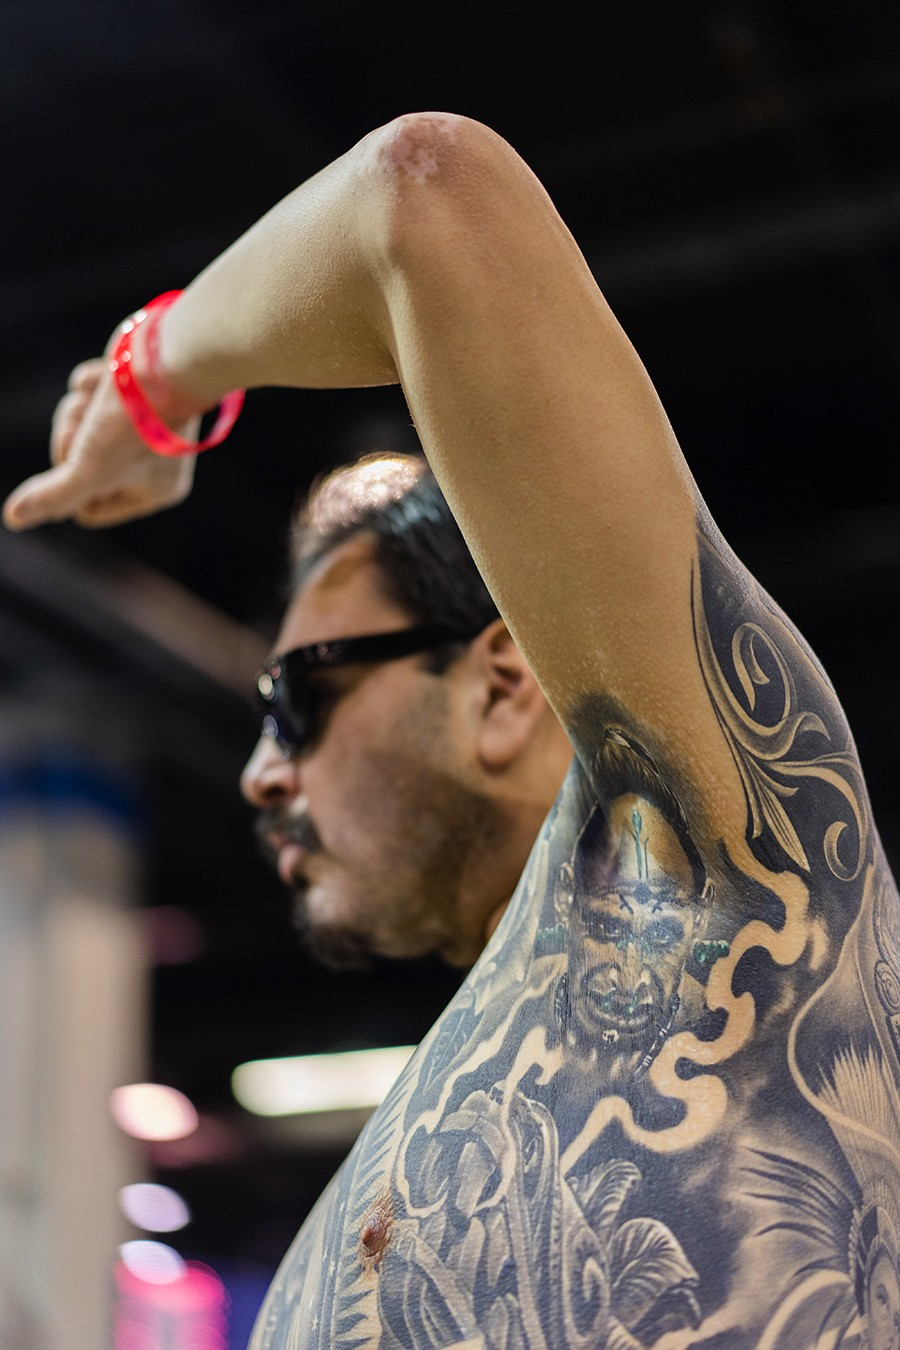 El Mexicano displays a tattoo from the movie Apocalypto in his armpit. - PAT NABONG